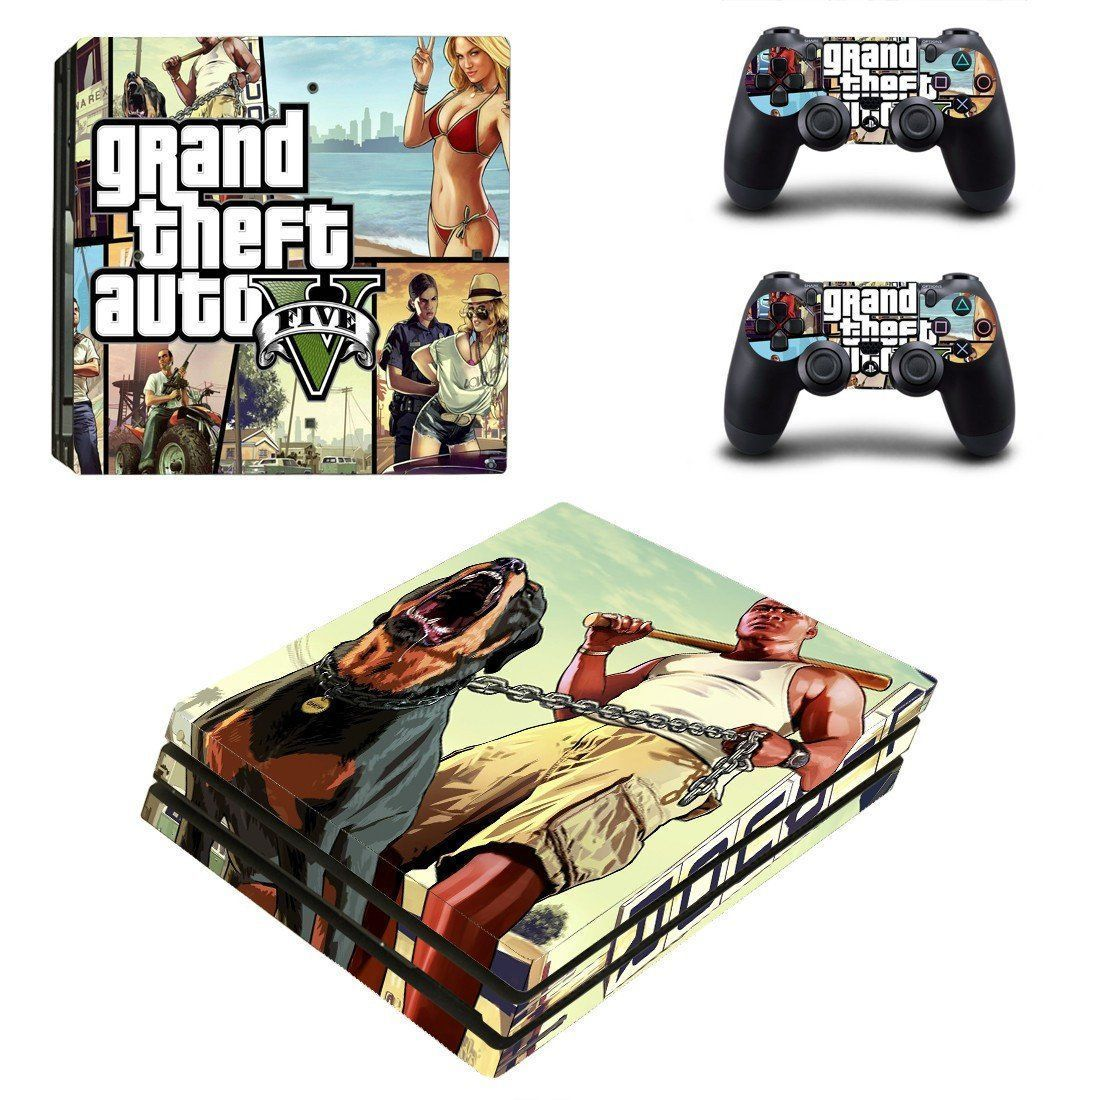 Gta 5 ps4 pro edition skin decal for console and